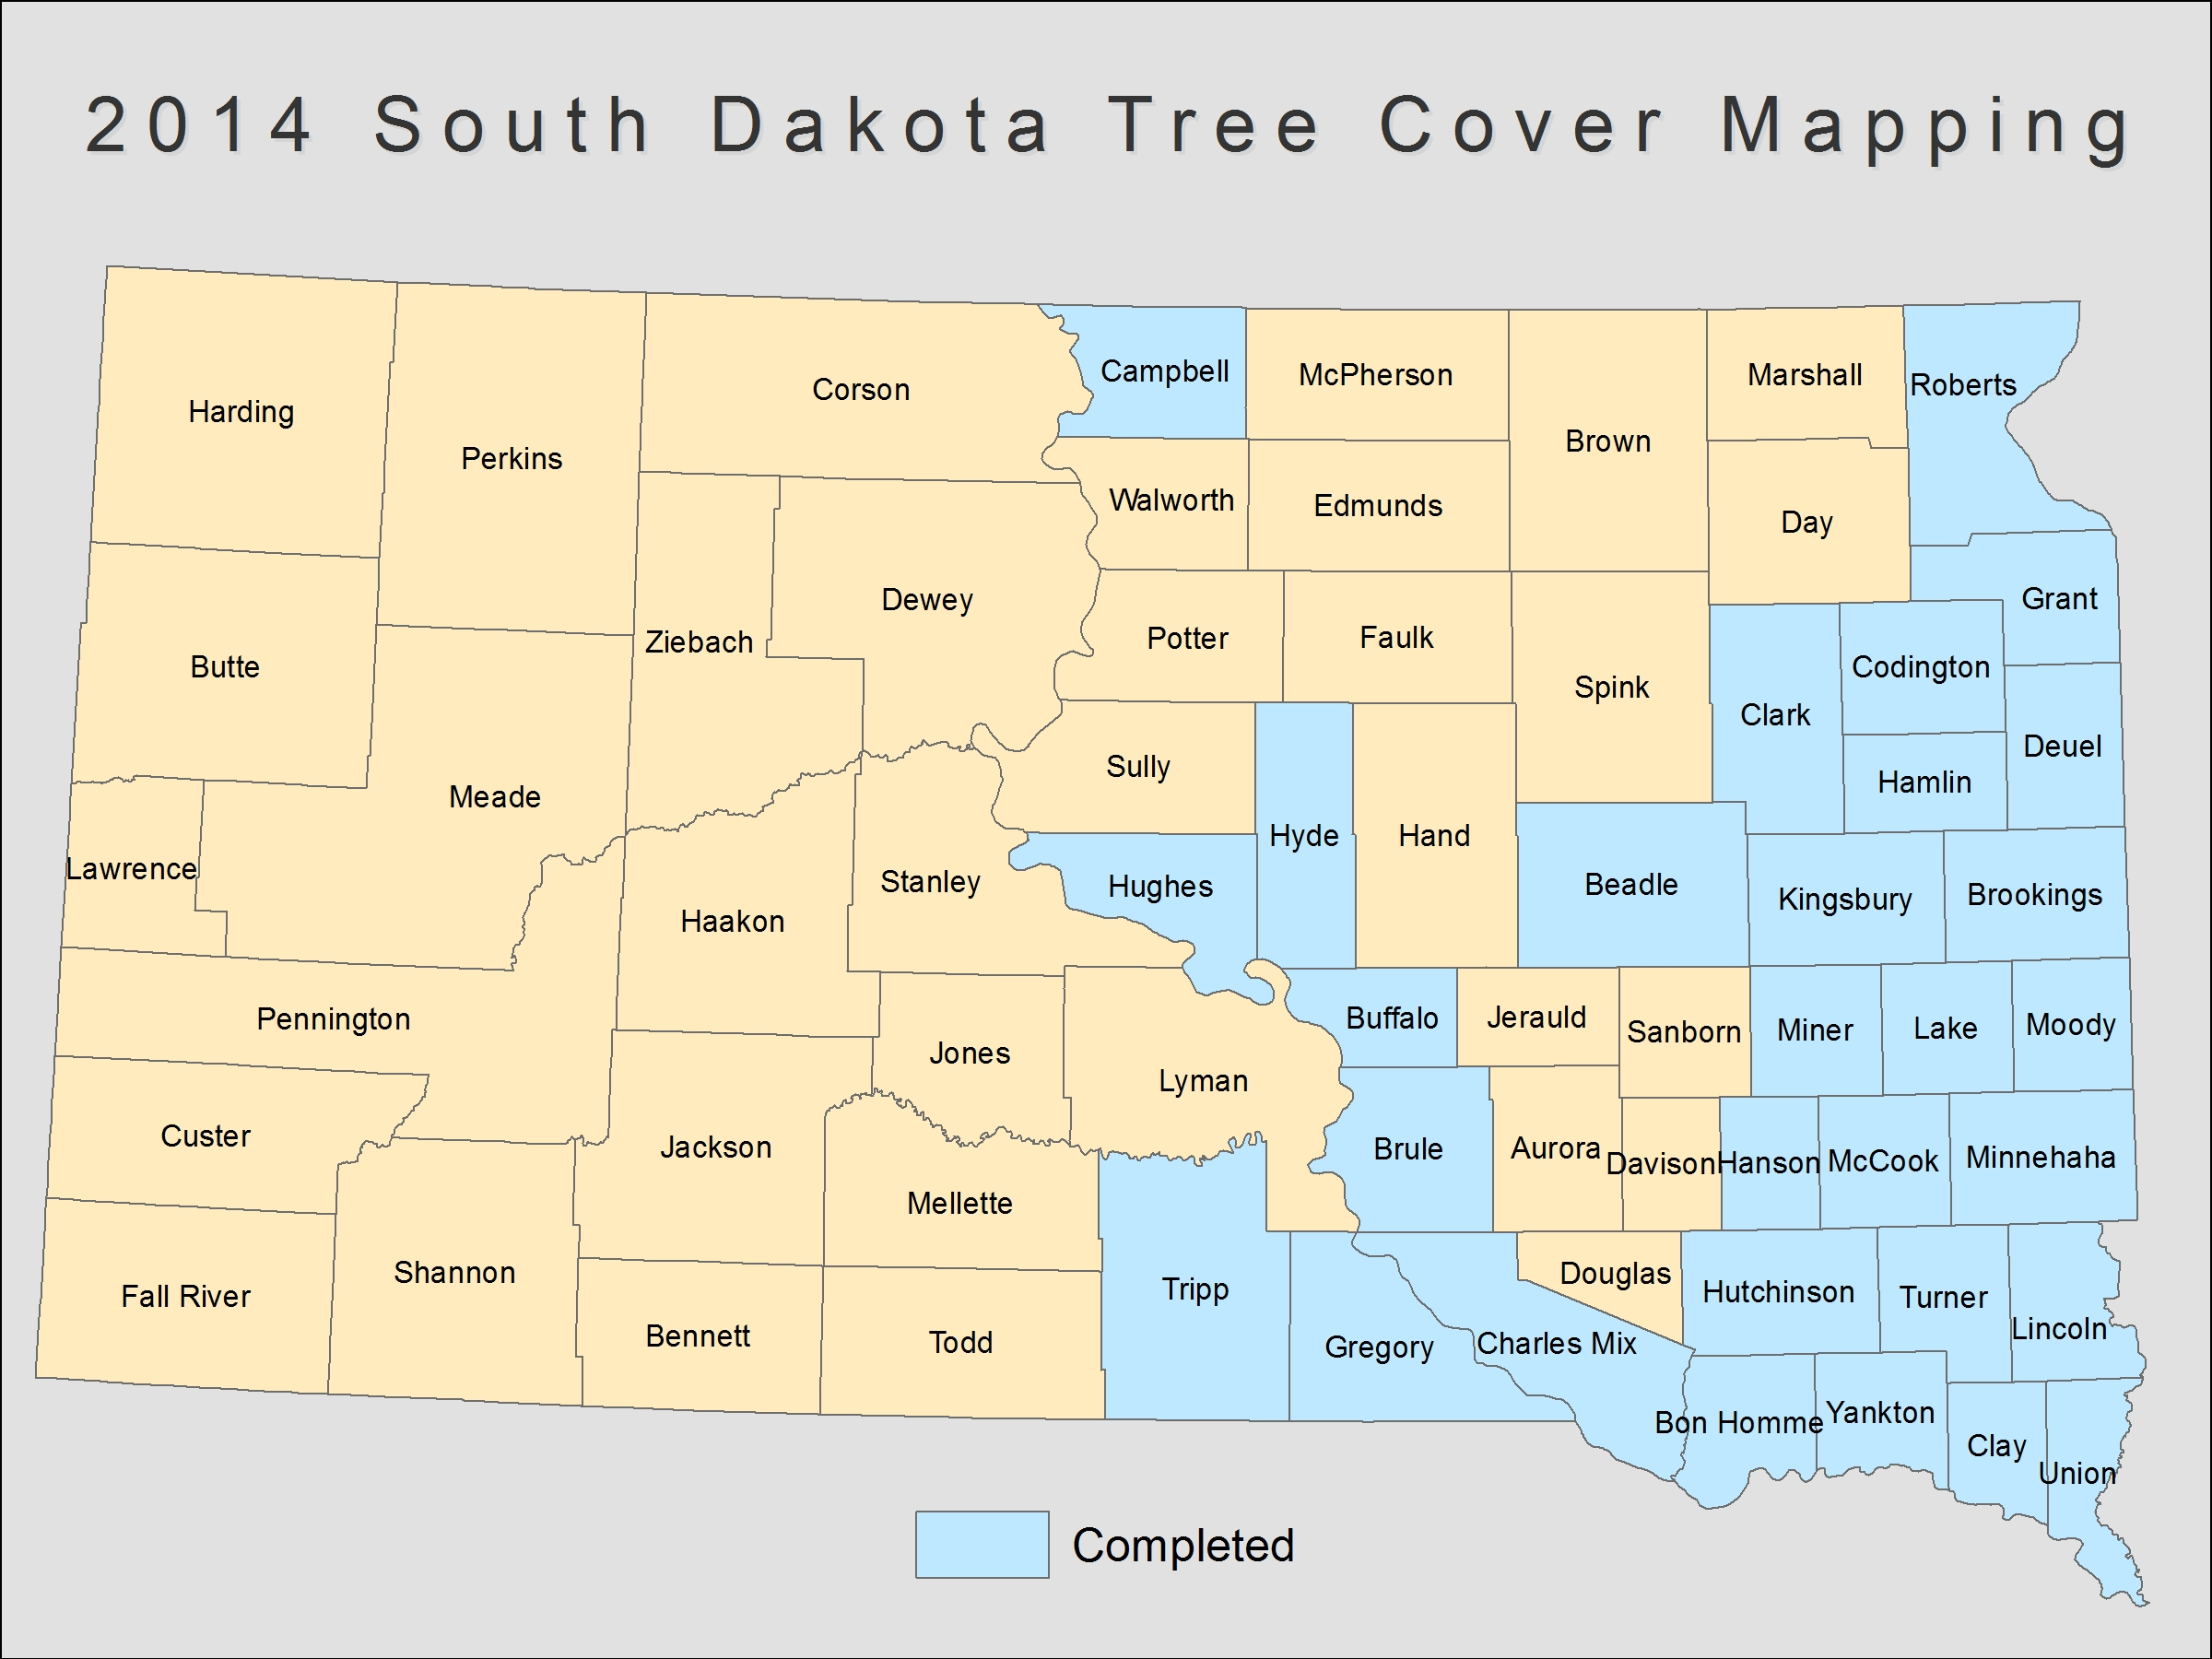 [image:] Status map of tree cover mapping in South Dakota.